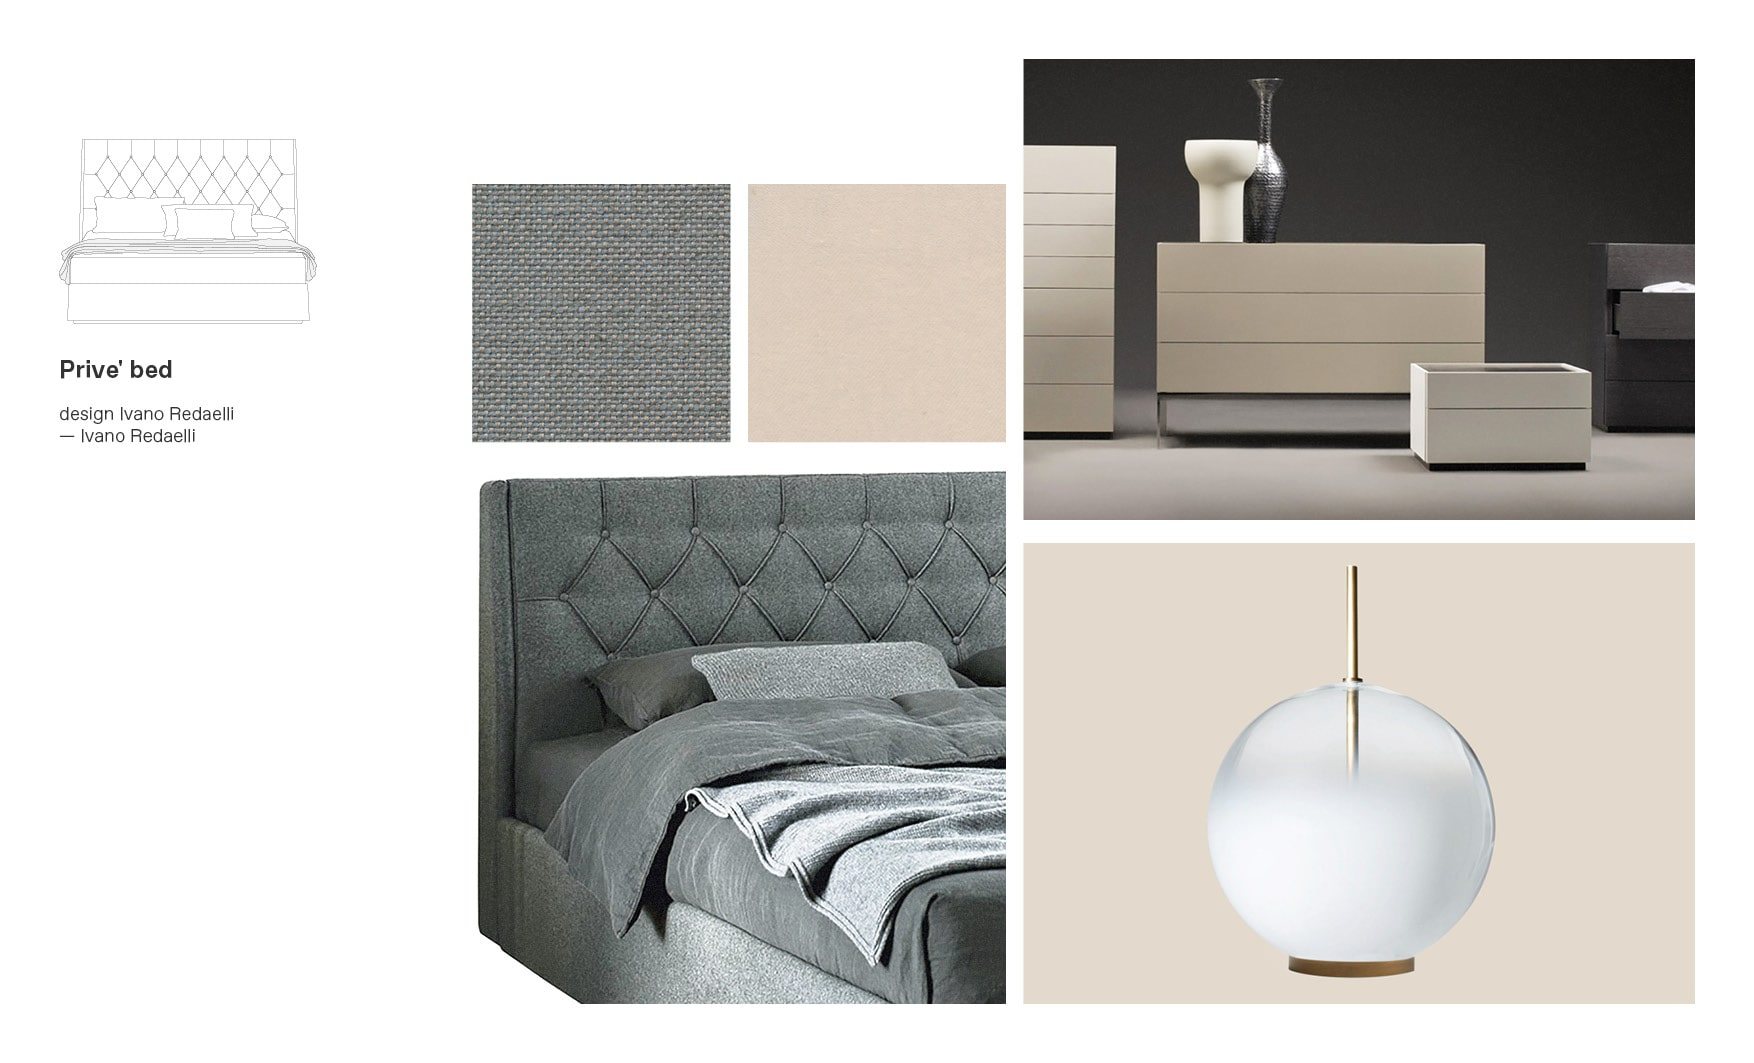 Ivano Redaelli beds and Prive' moodboard composition made by Esperiri team